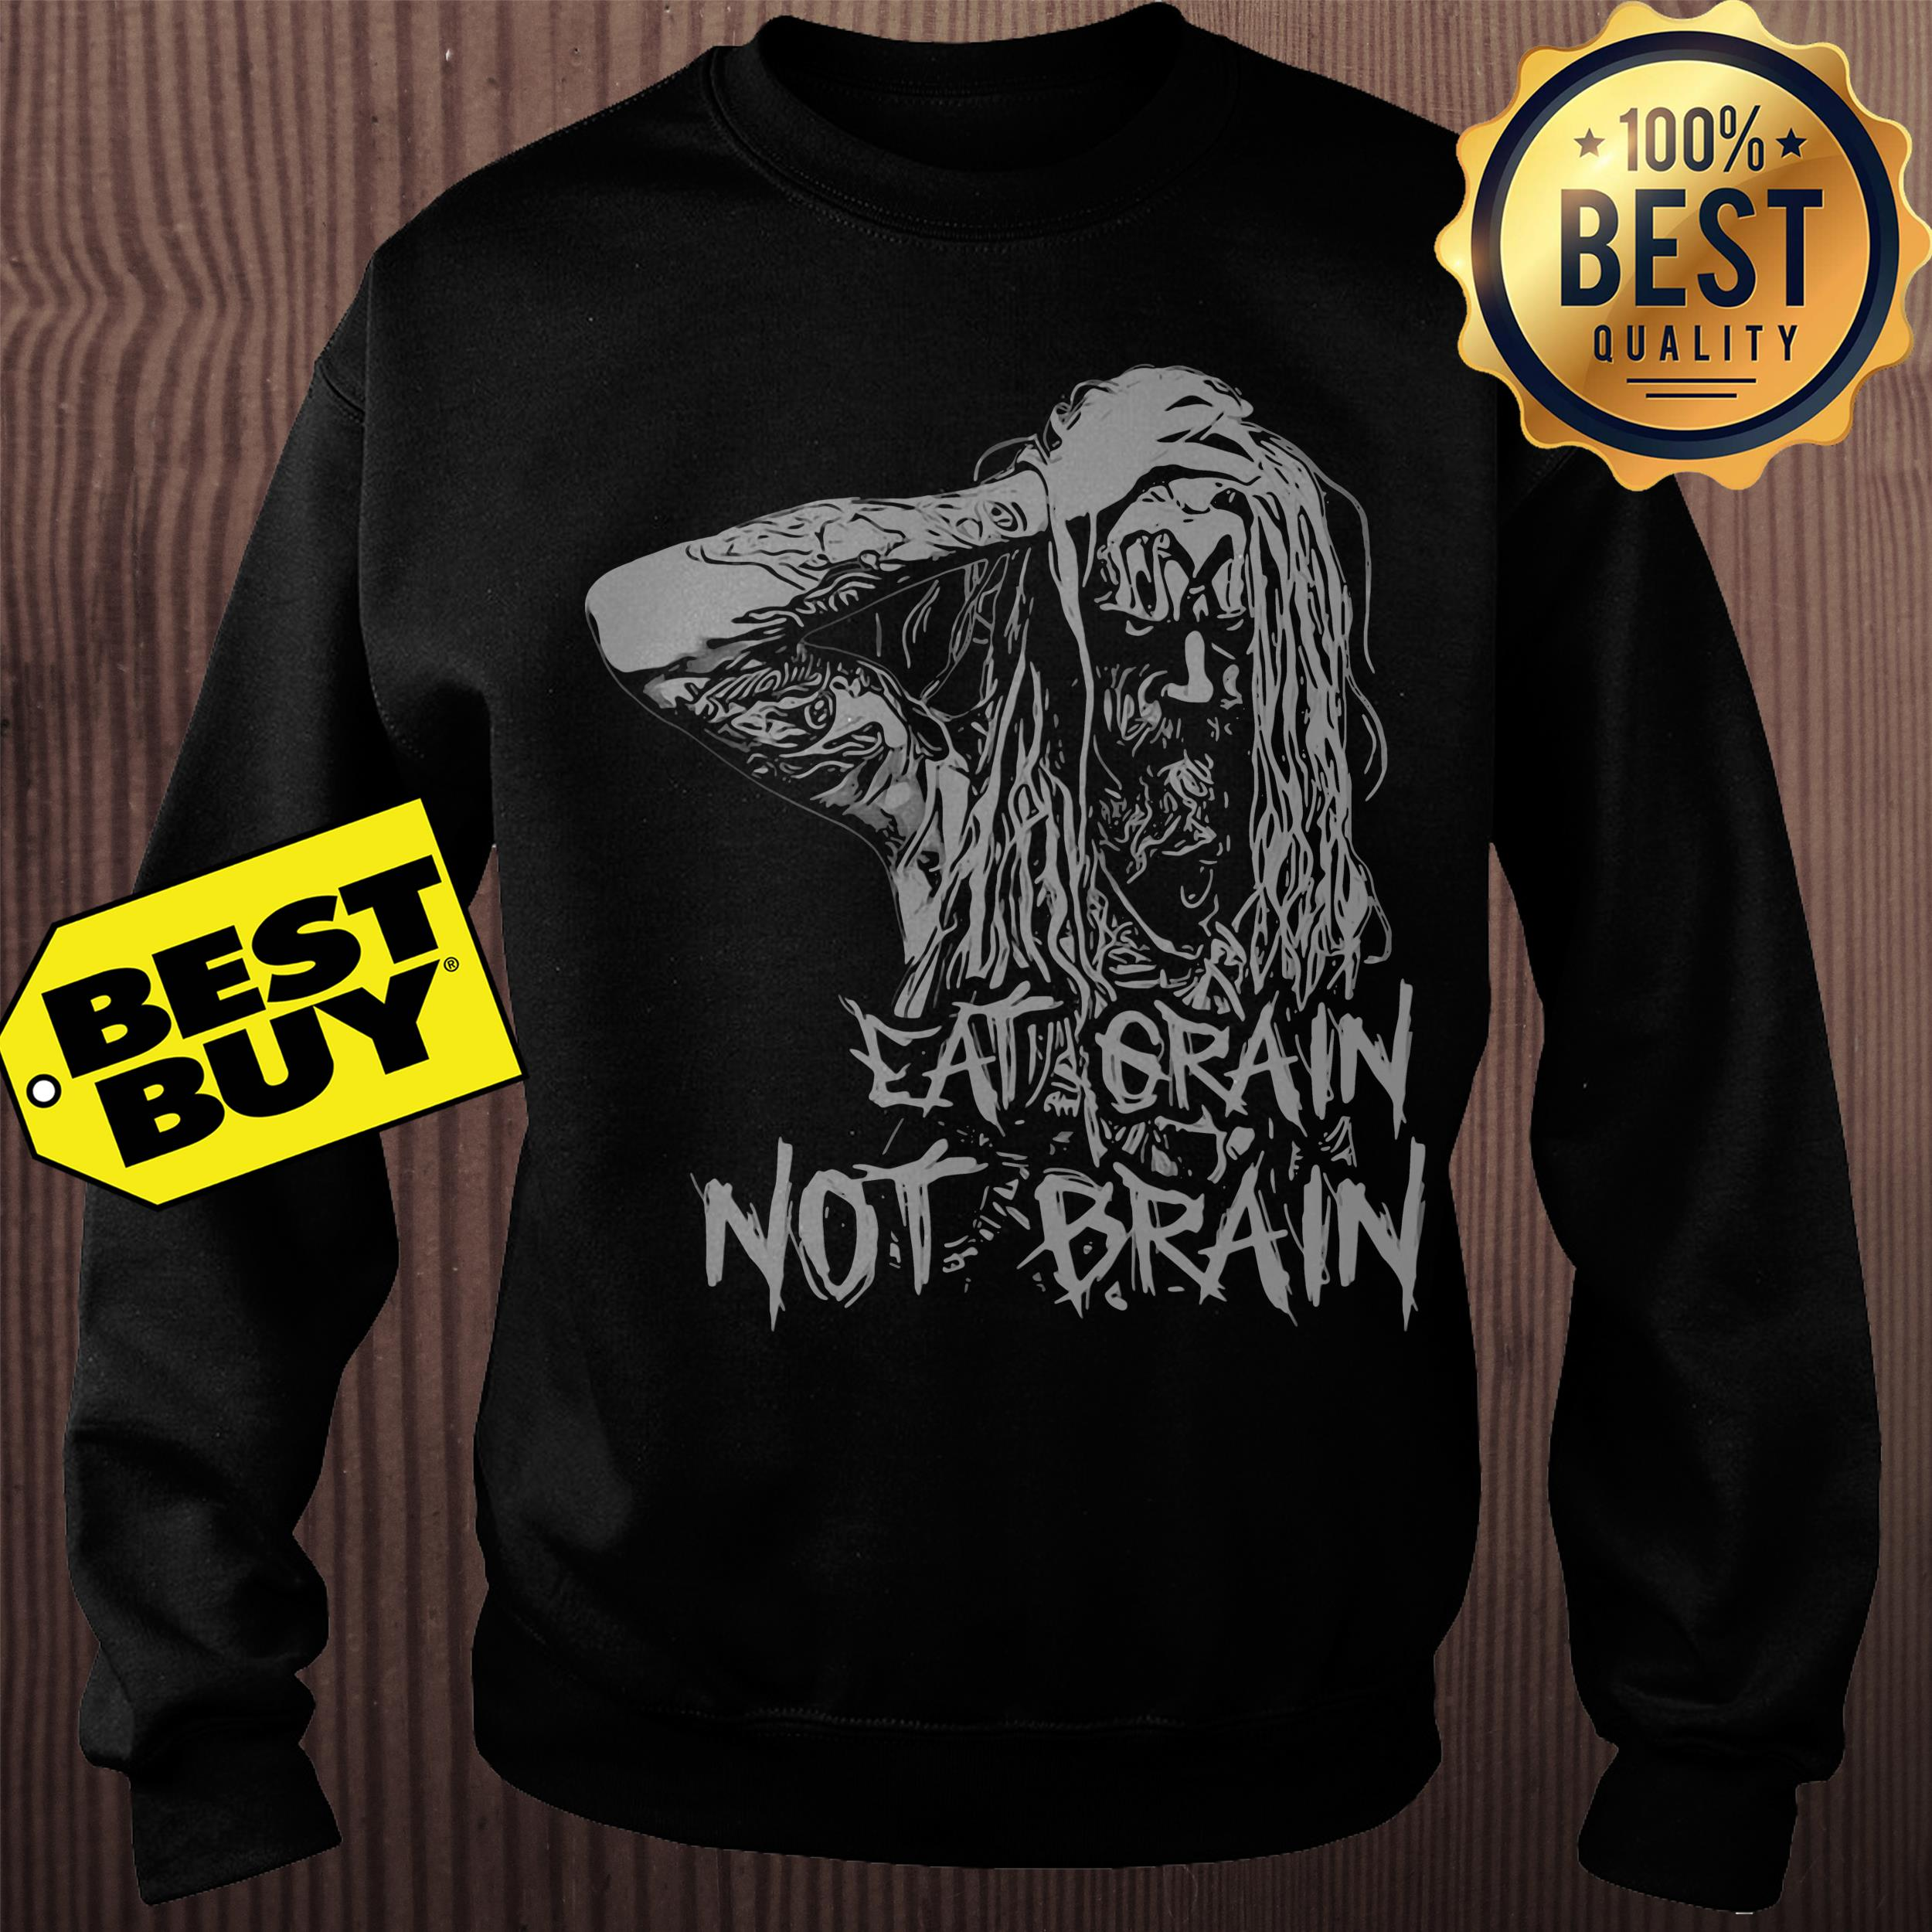 Rob Zombie Eat Grain Not Brain Sweatshirt